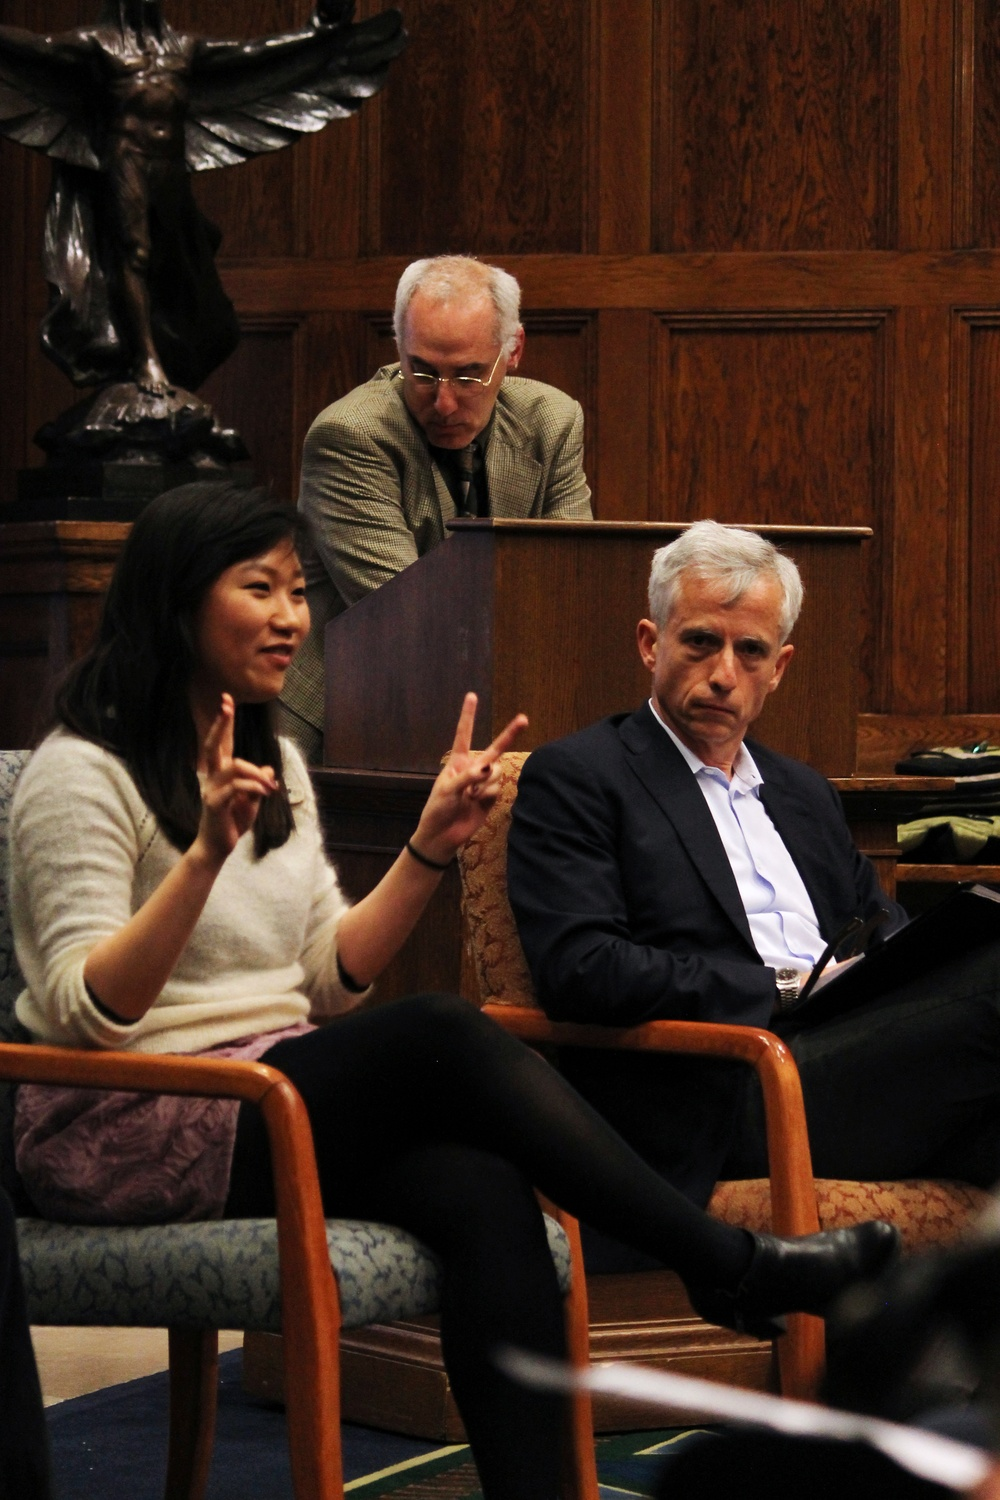 Olivia Z. Zhu '15, who has served on the Academic Integrity Committee for 3 years, speaks about honor codes at Harvard's graduate schools and Radcliffe College, and the student voice in creating the College's honor code at the Barker Center on Monday evening.